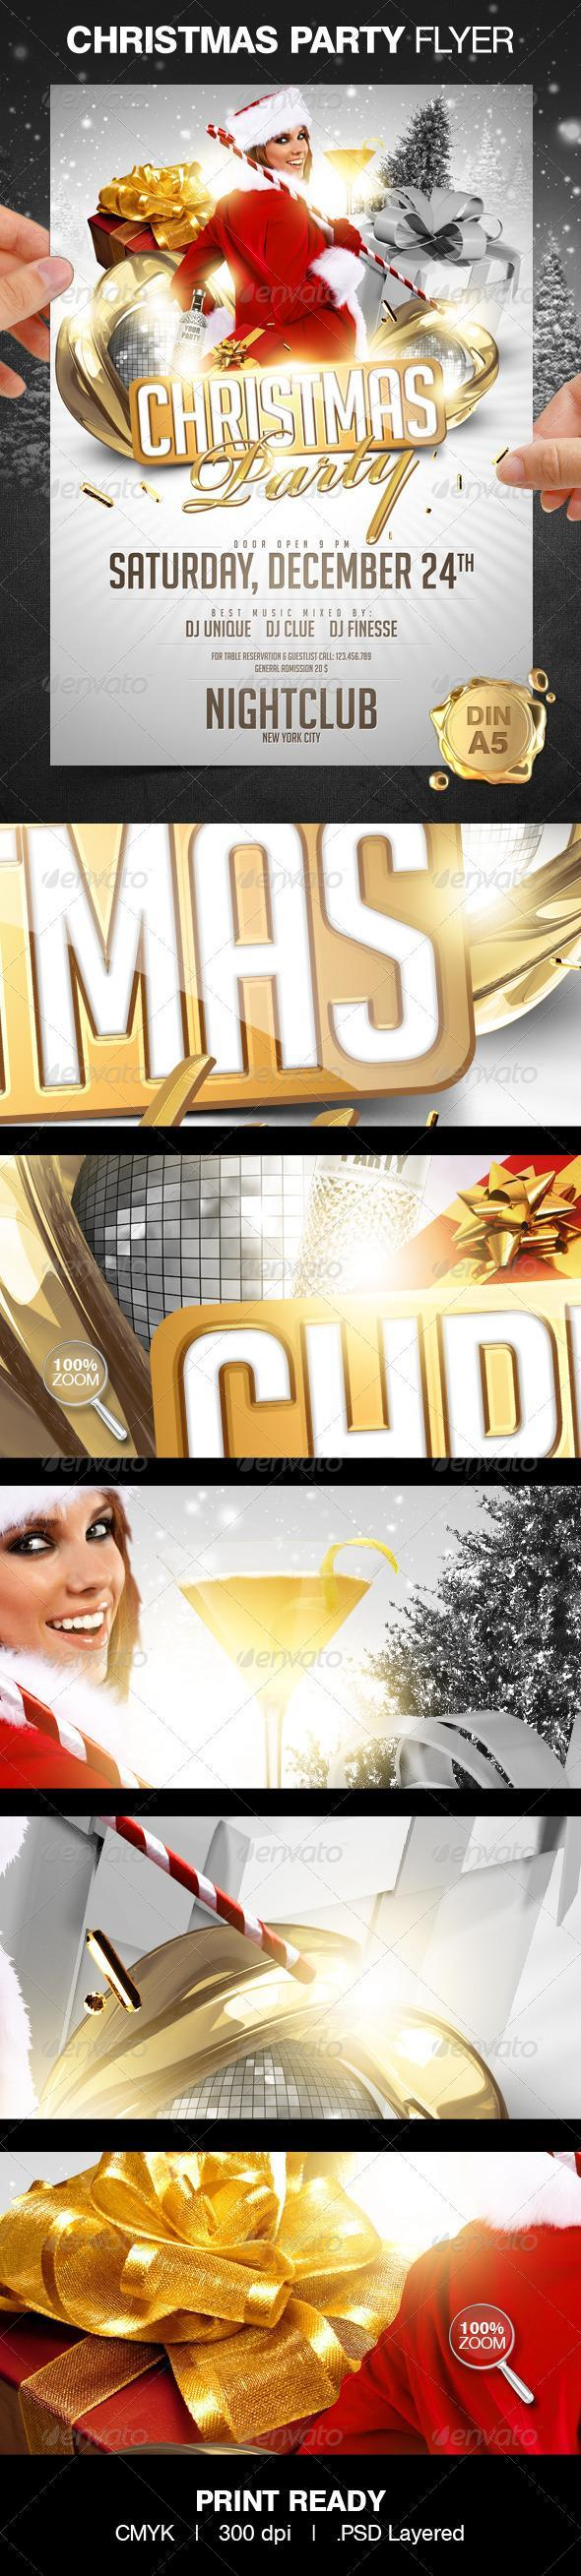 Christmas Party Flyer Design Poster preview